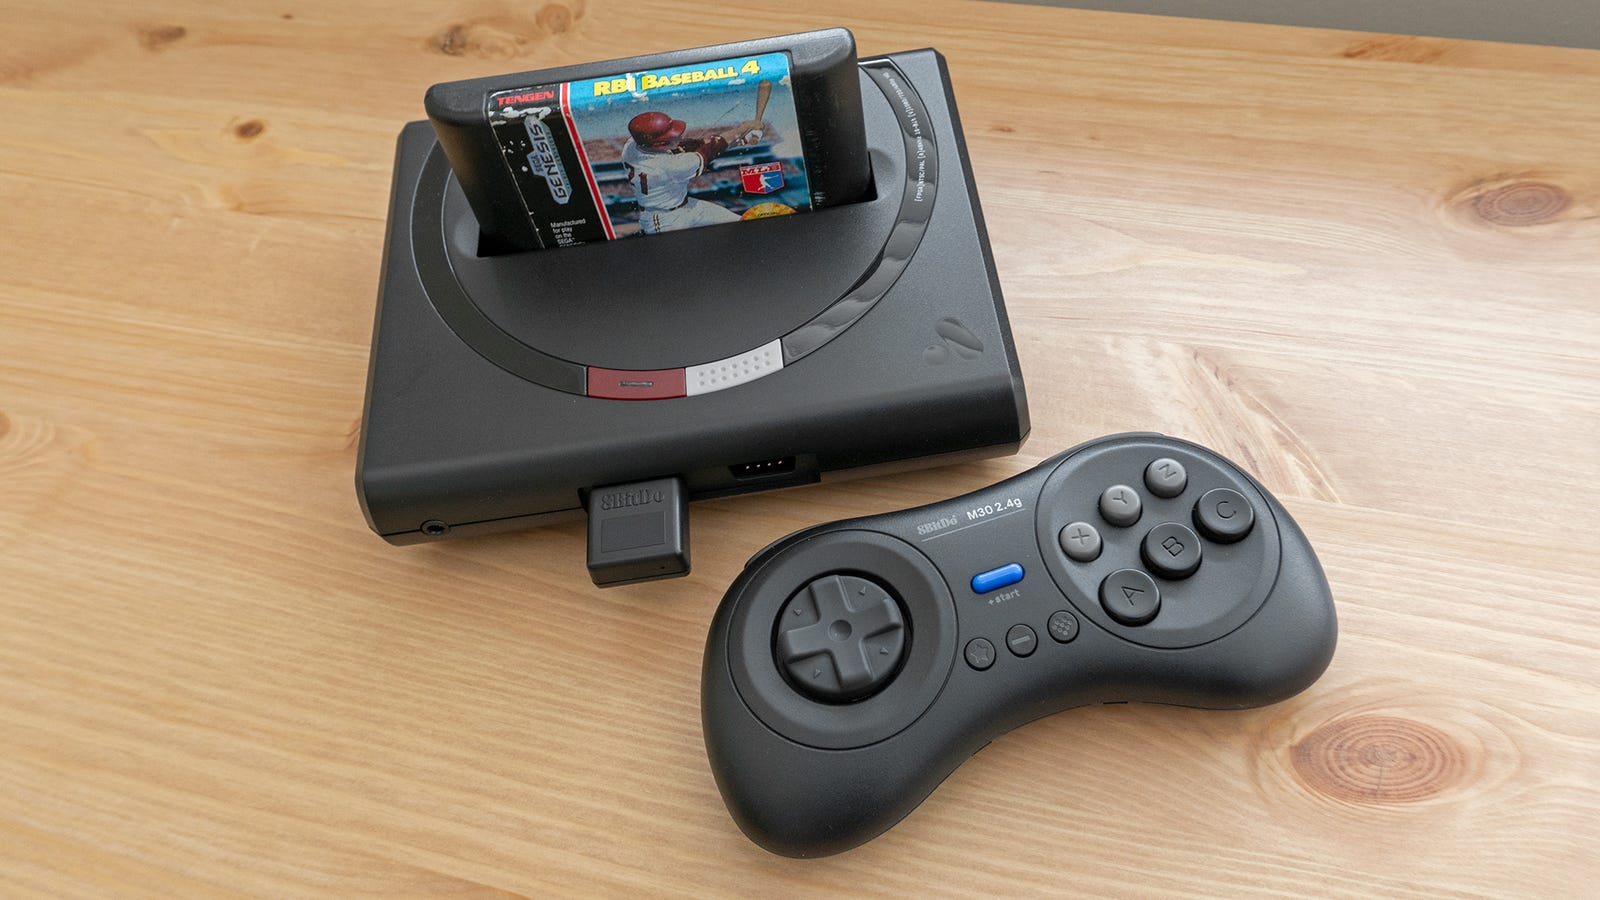 The Mega Sg is available in a black or white finish, but the version we tested best mimics the look of Sega's old hardware.